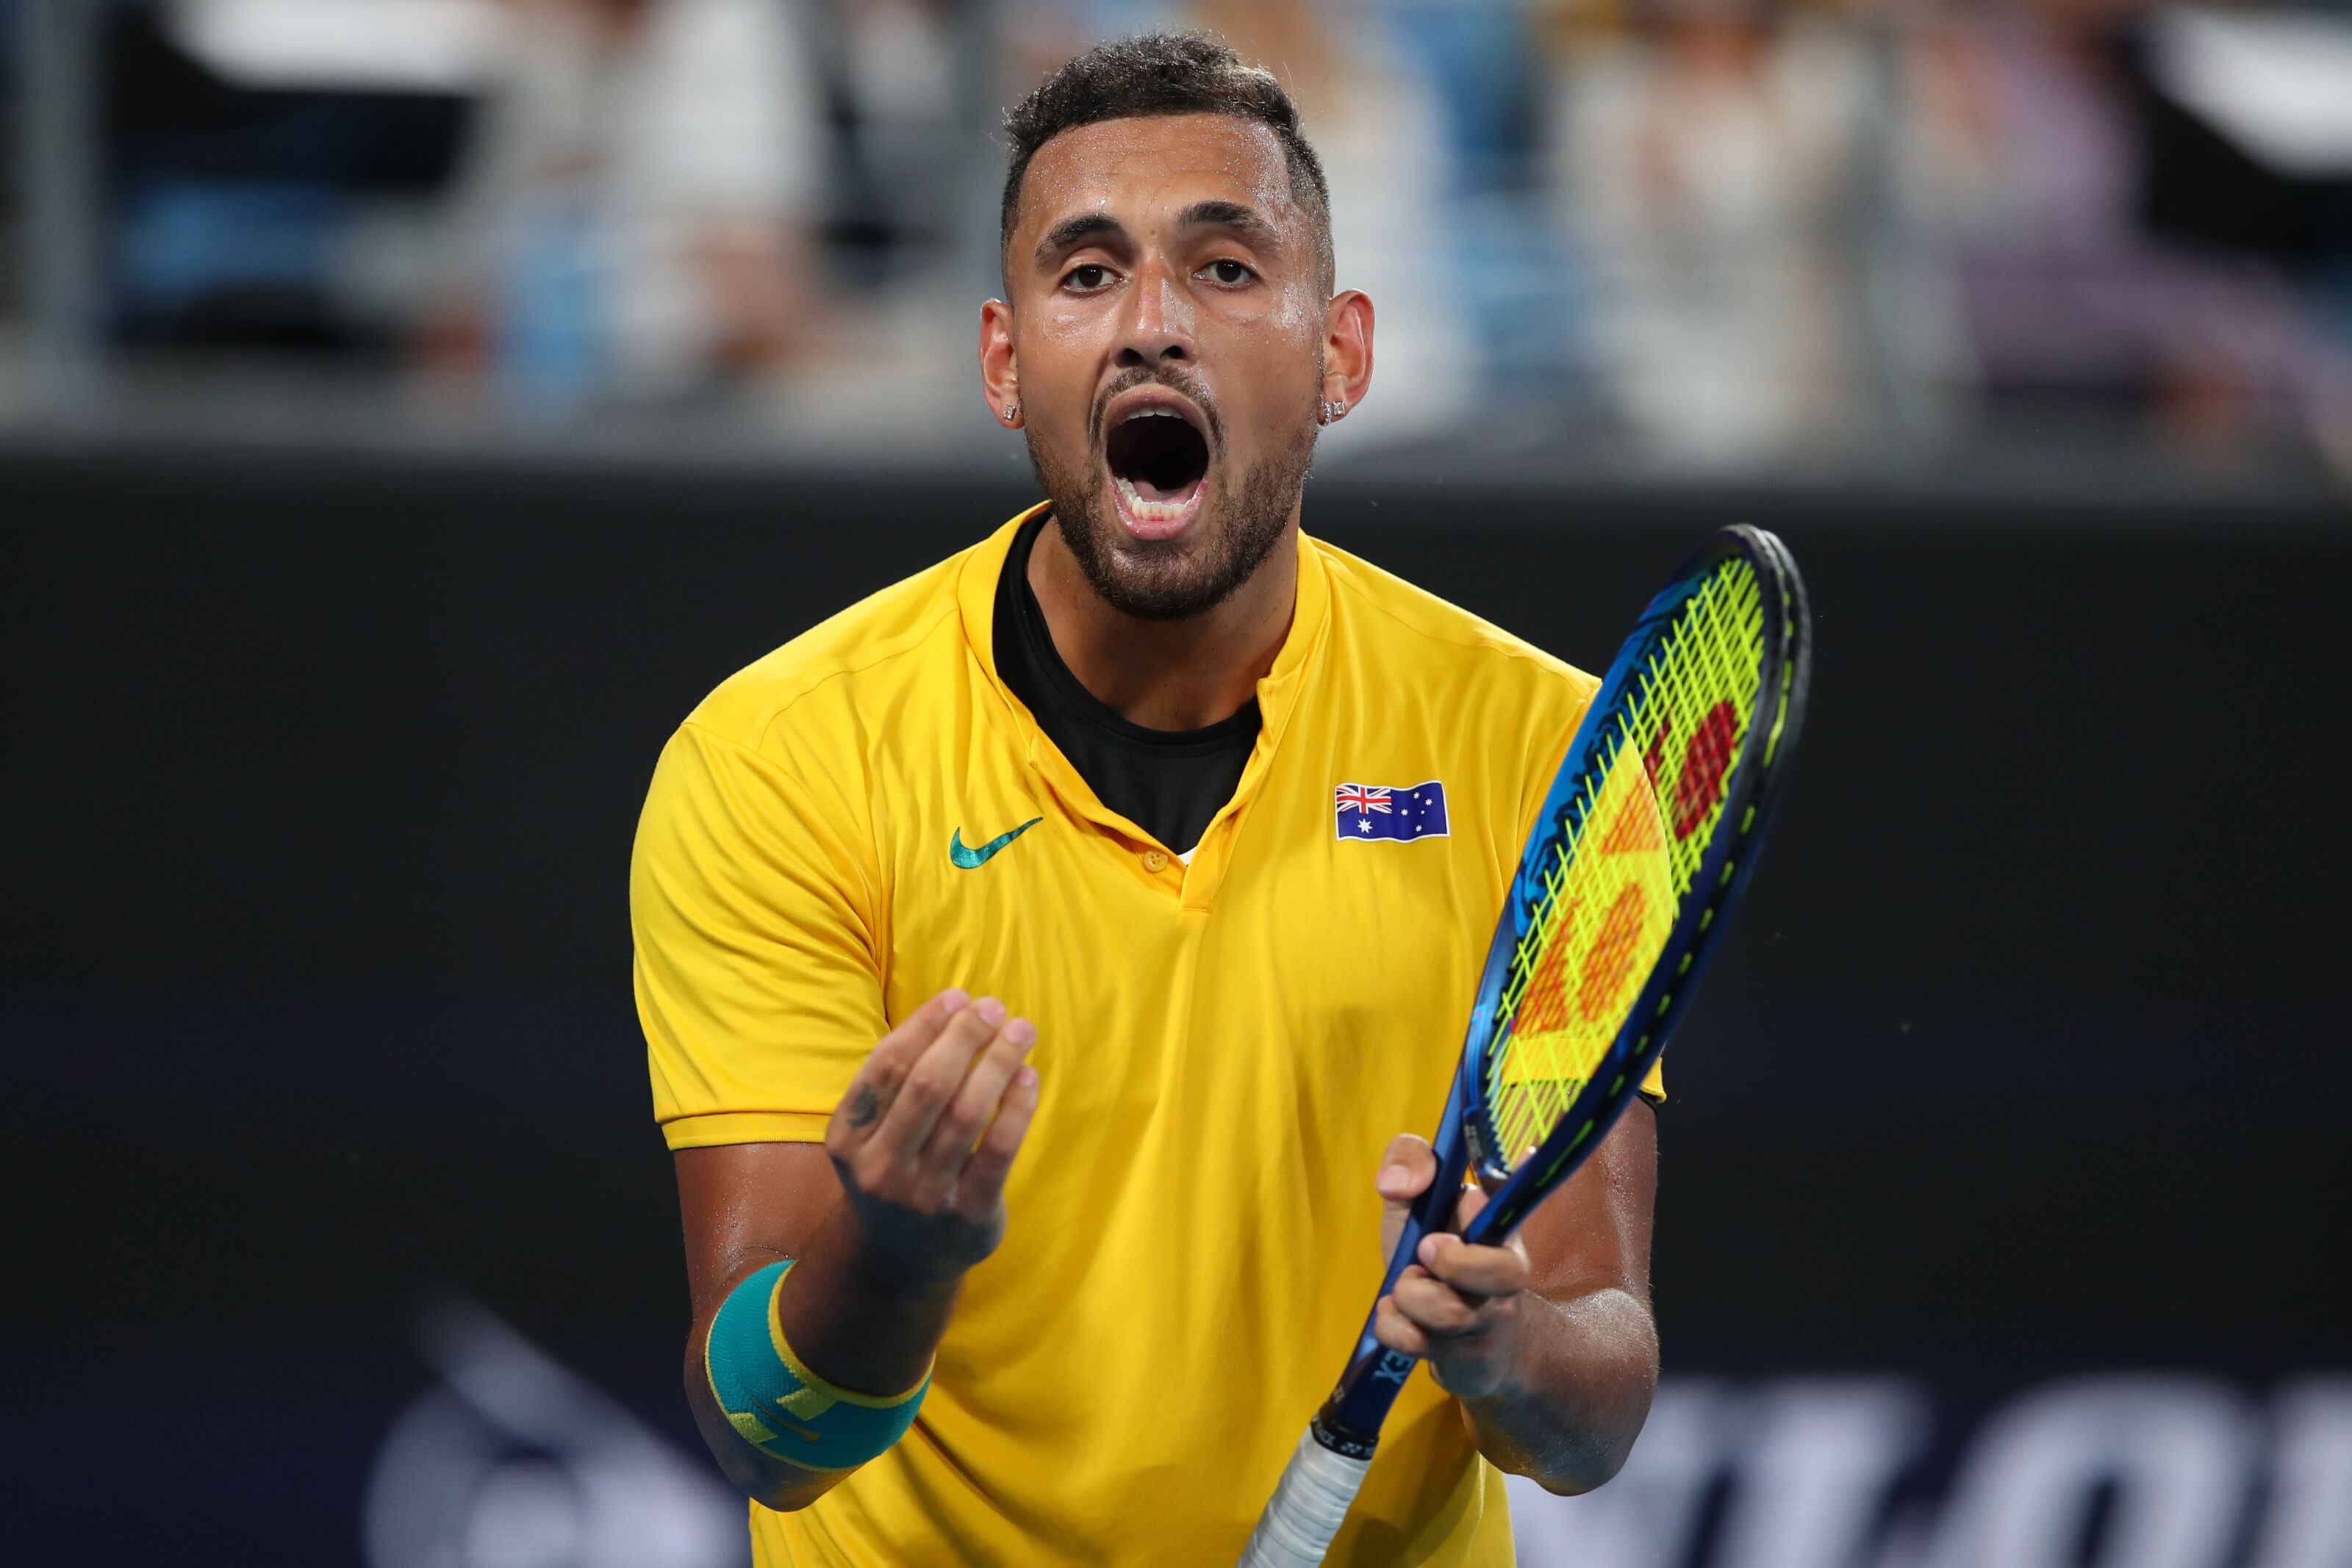 Australian Open 2020: Nick Kyrgios and 6 sleeper picks in men's singles